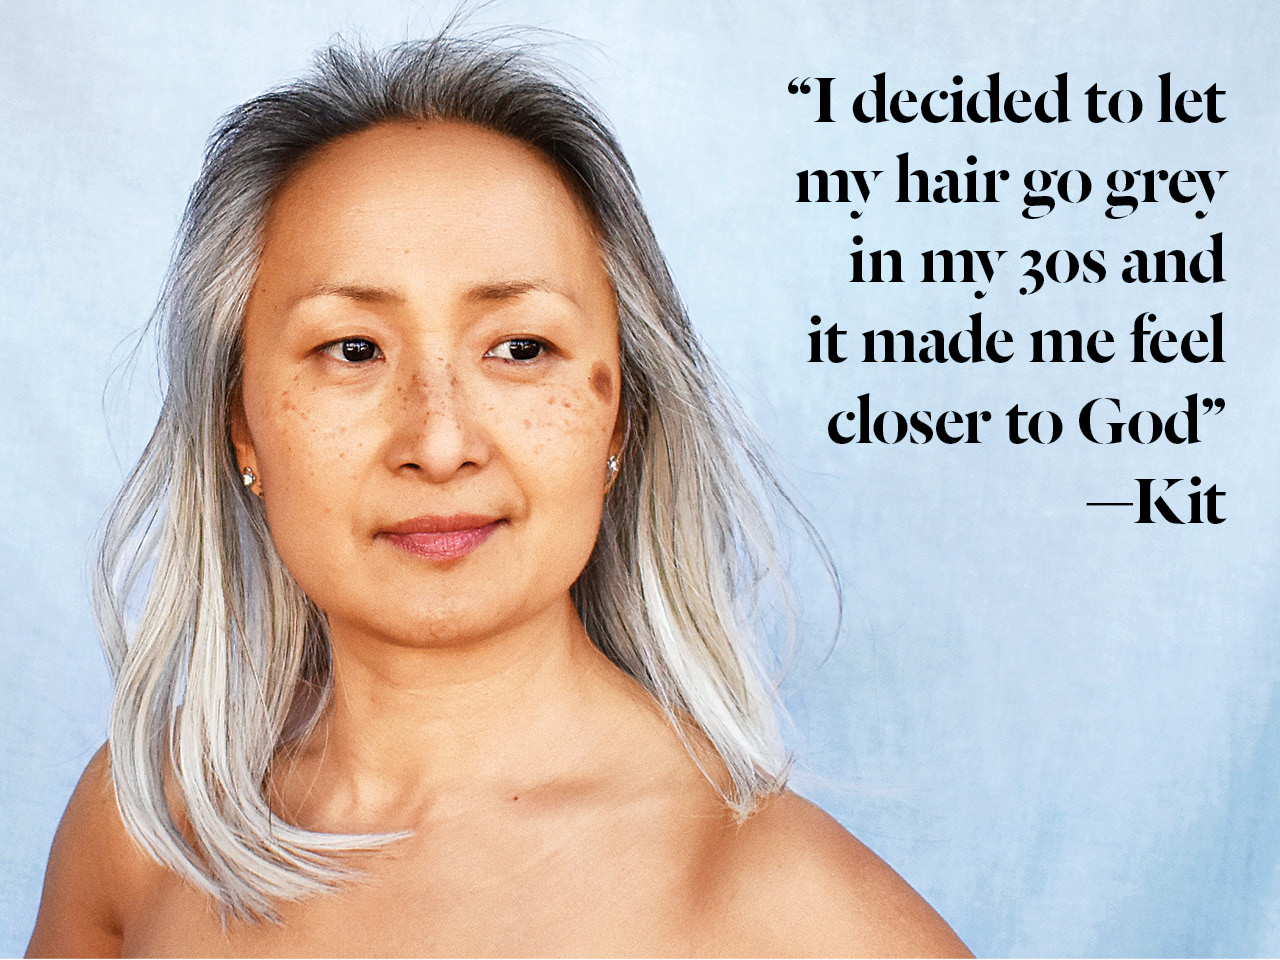 A photo of an Asian woman in her fifties with silver hair